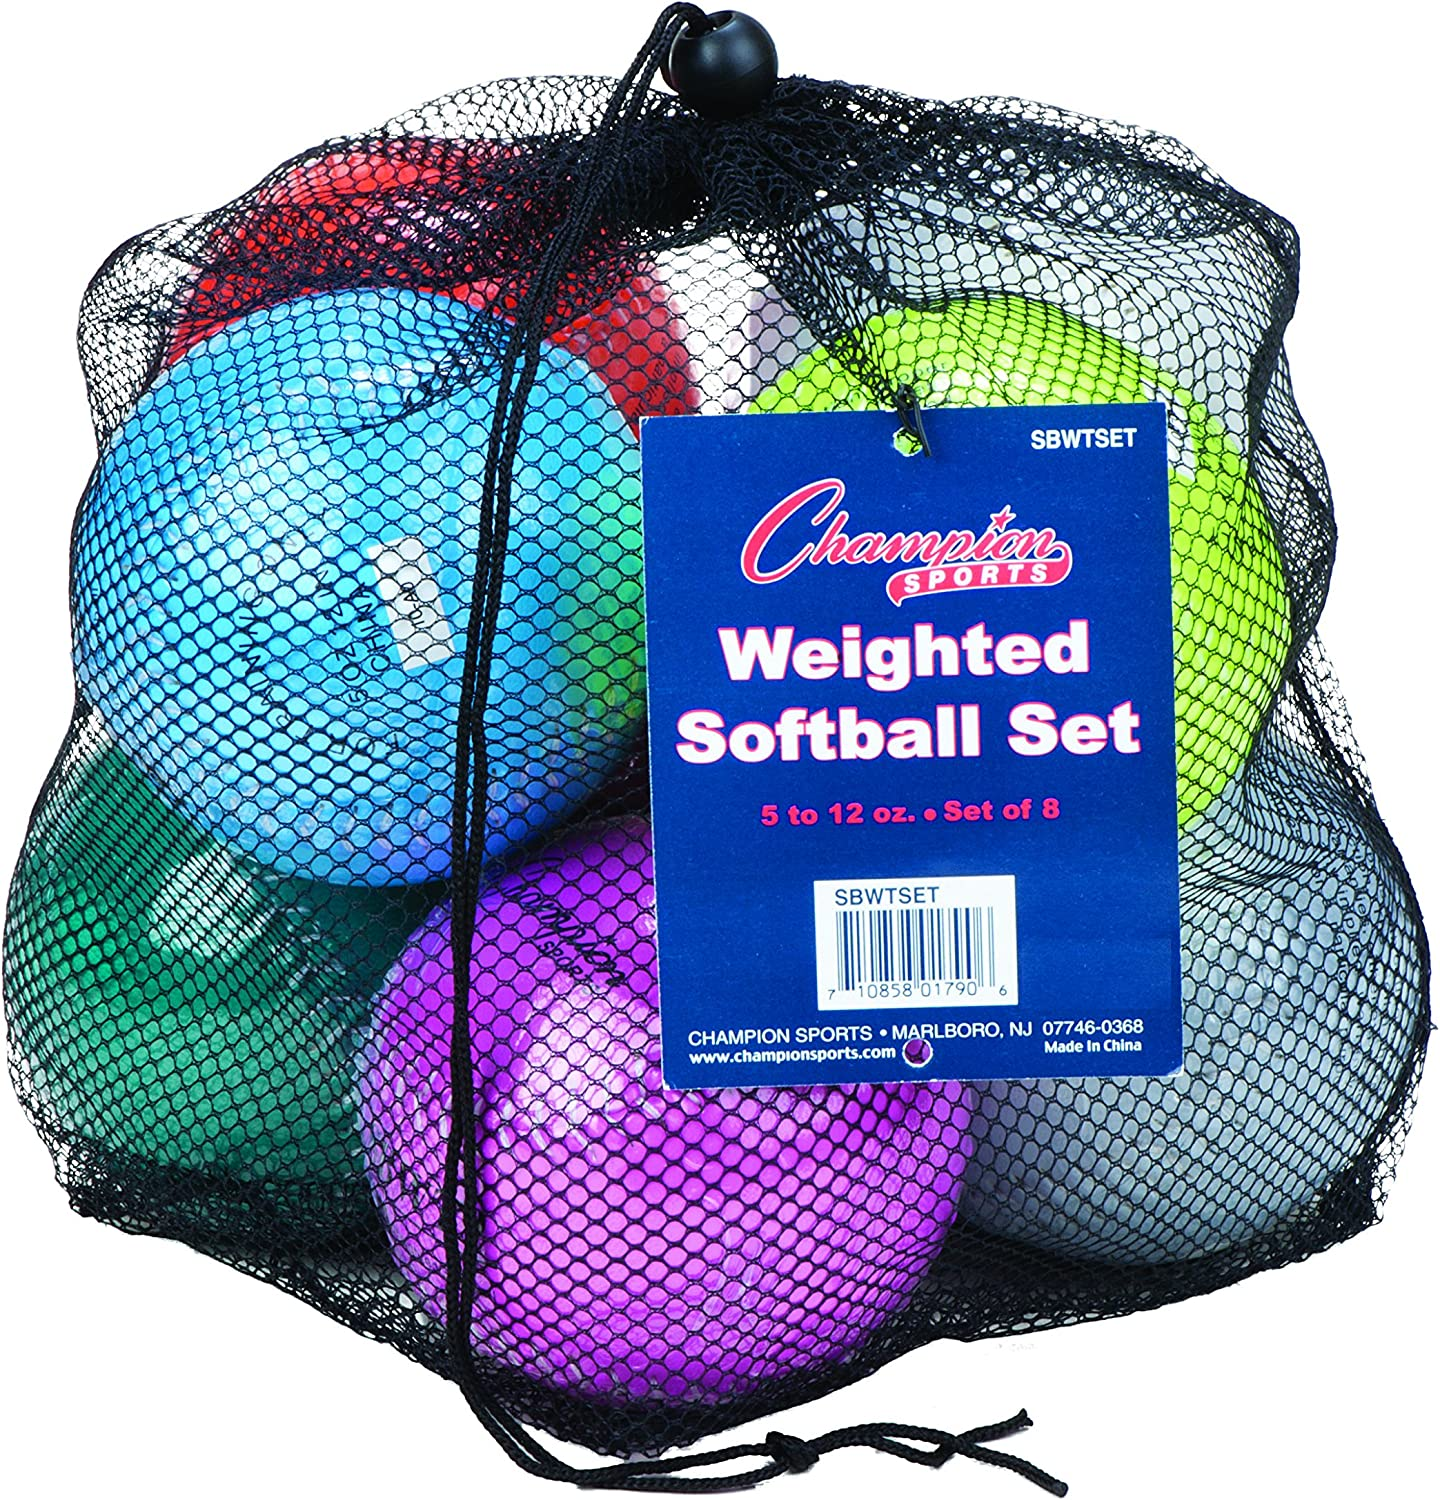 Champion Sports Attention brand Weighted Training Portland Mall Softball with Carryi Nylon Set